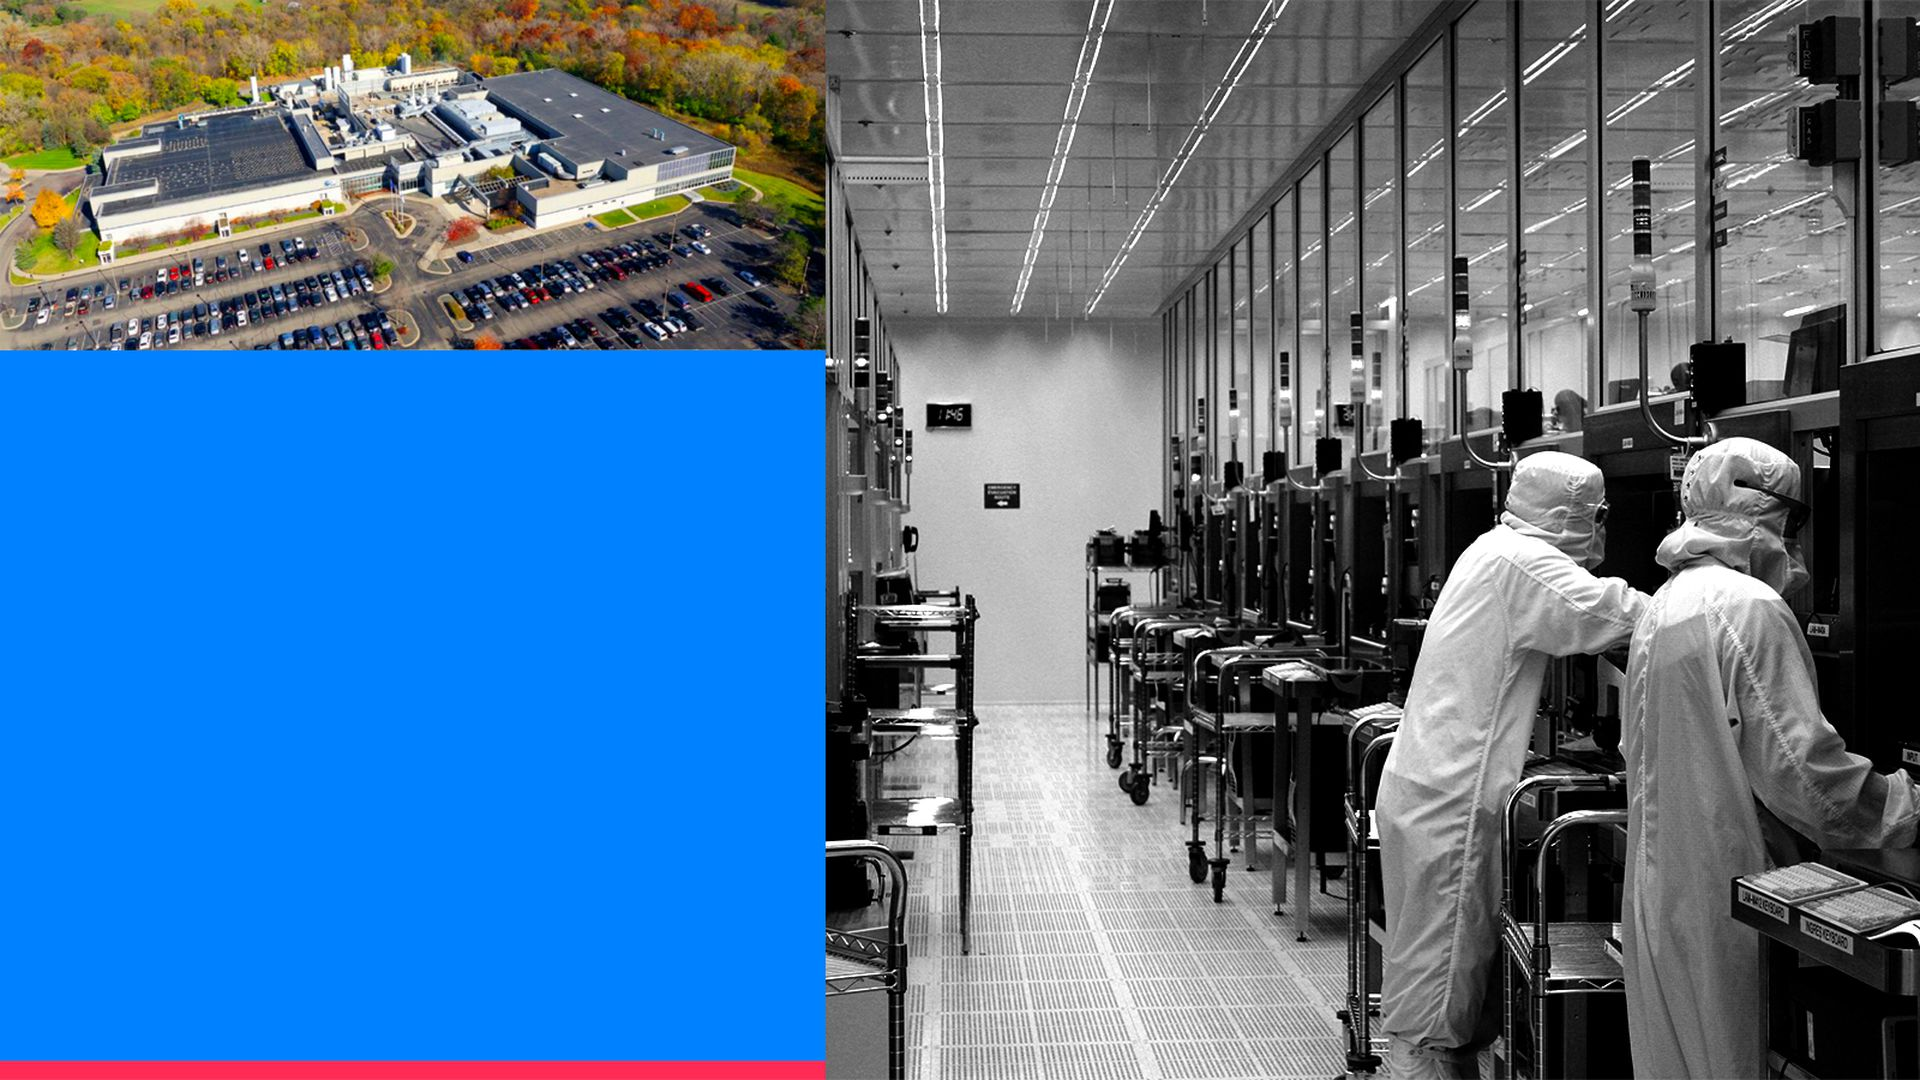 A collage of images of the inside and outside of SkyWater's chipmaking facility